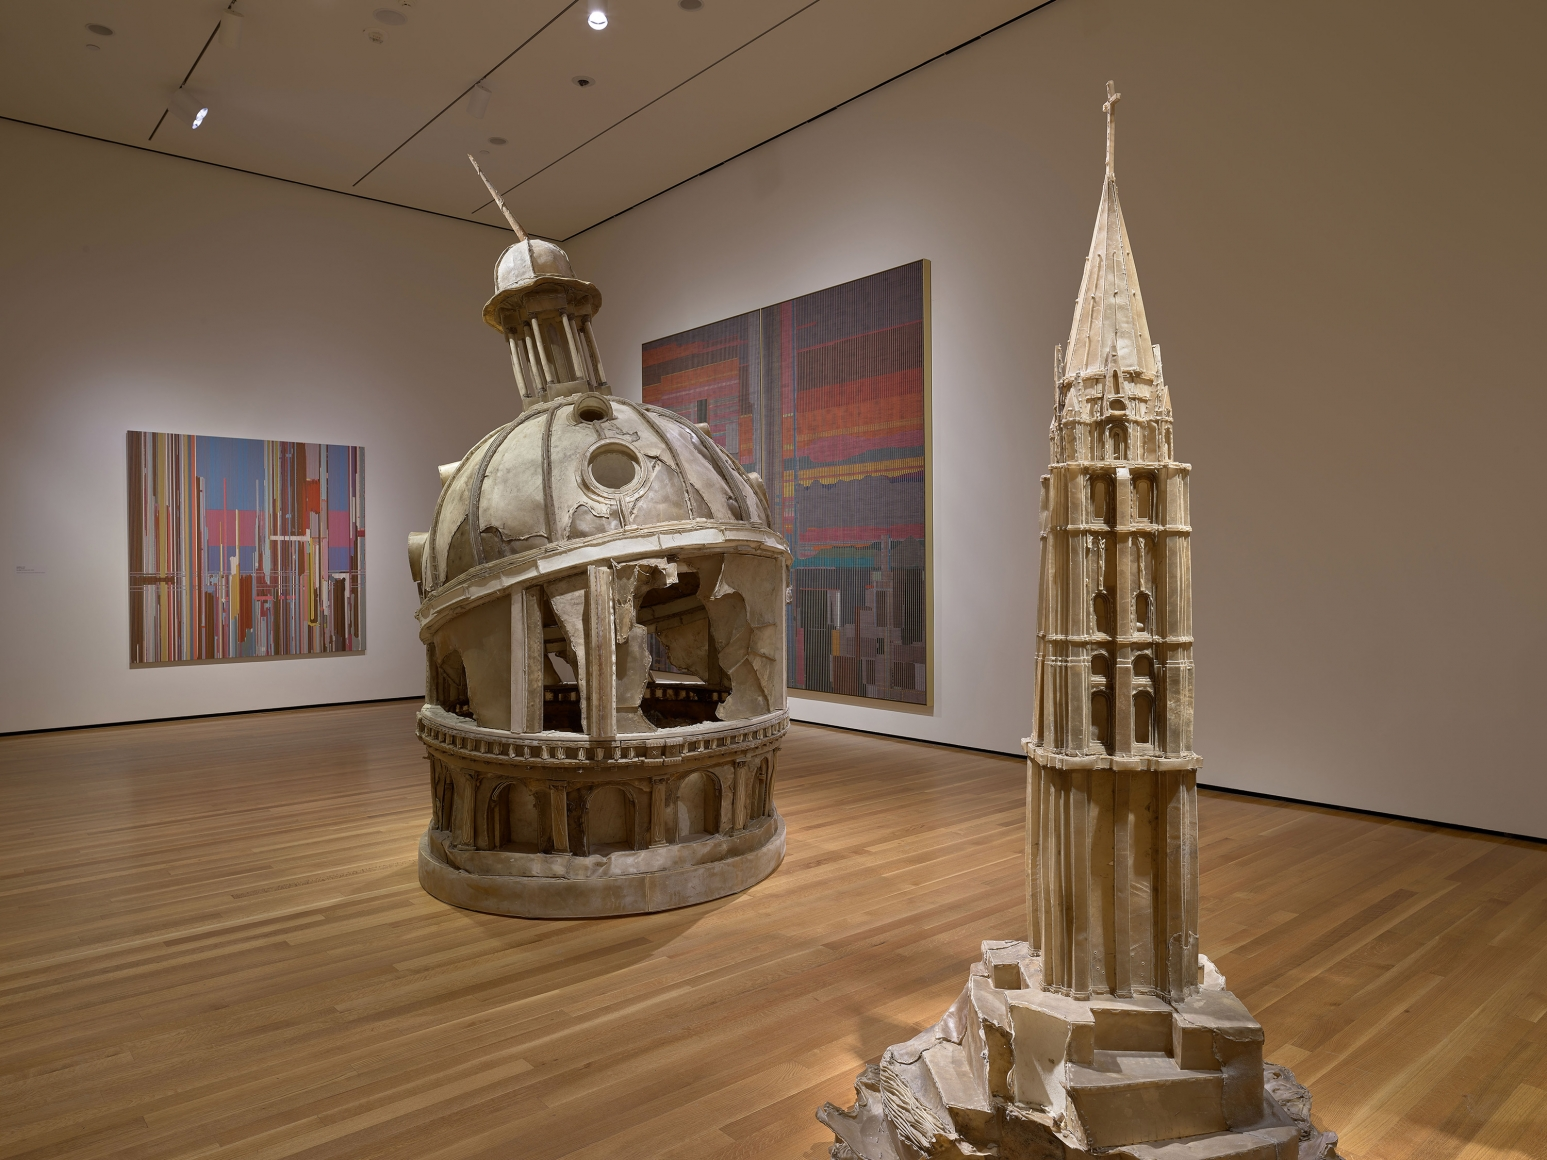 View 1 of Liu Wei's solo museum exhibition titled Invisible Cities at the Cleveland Museum of Art